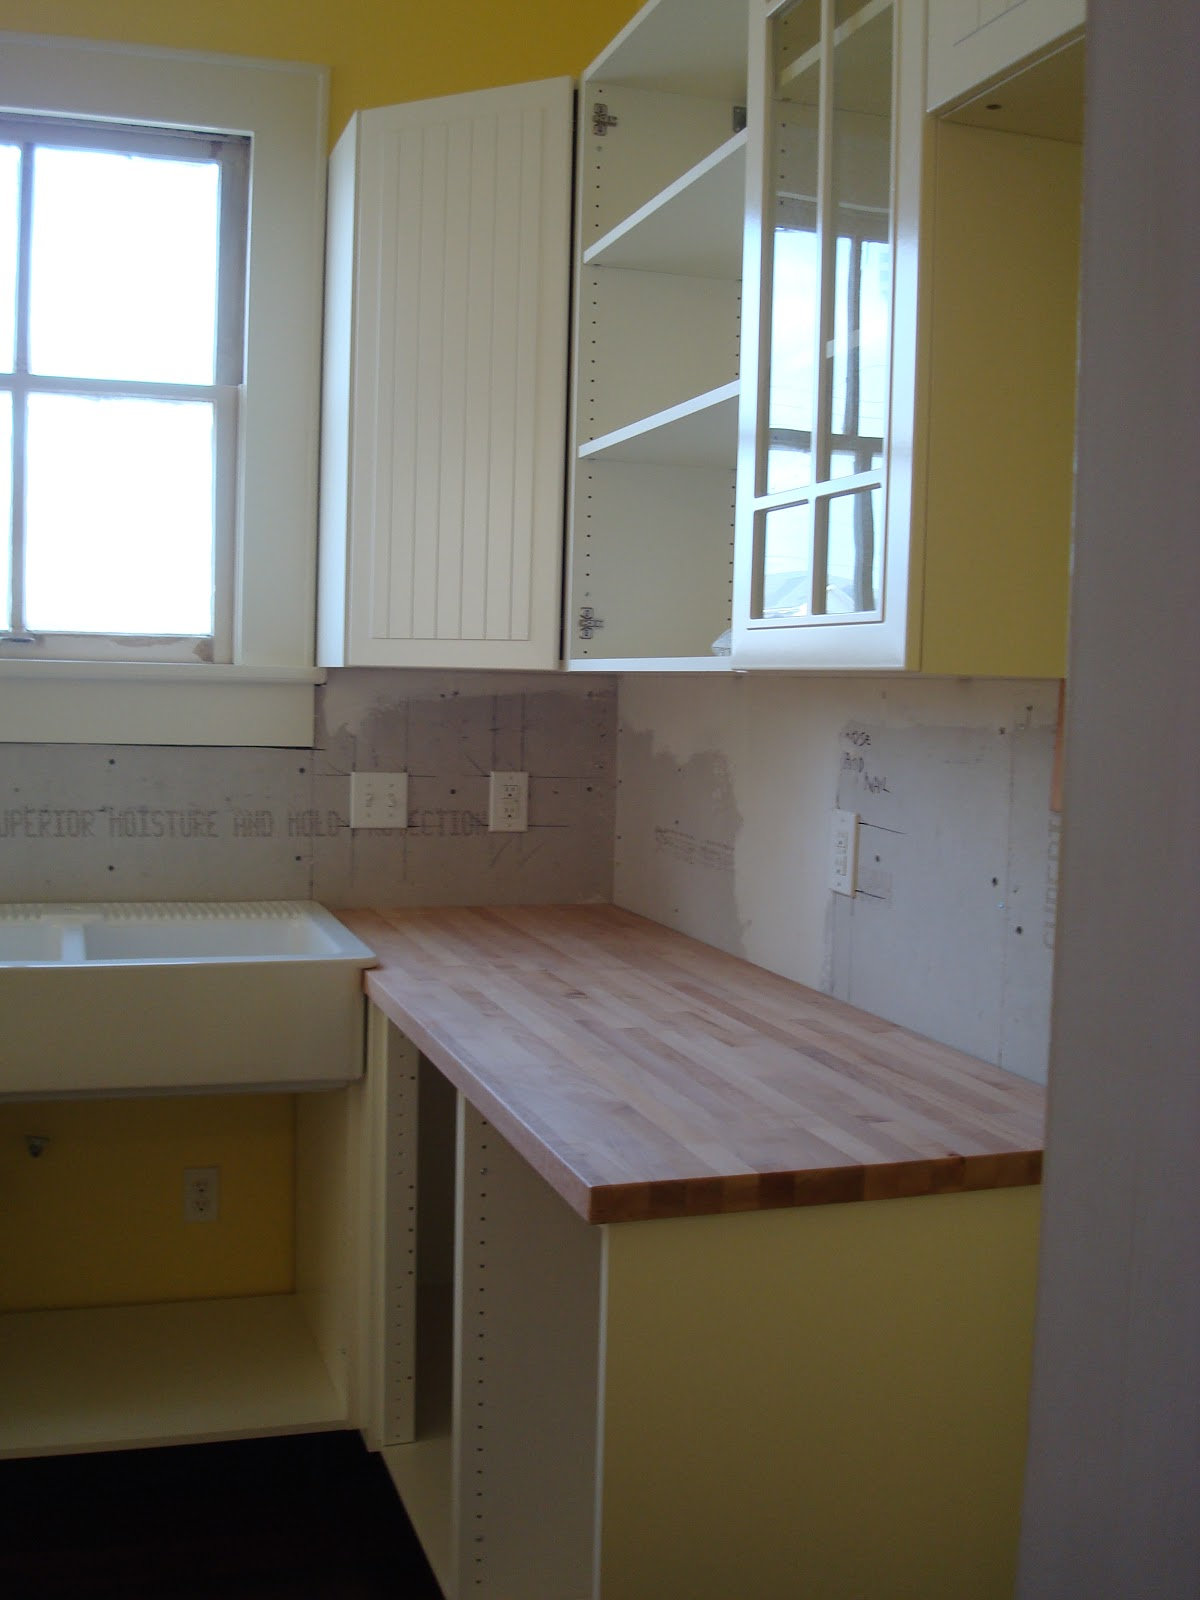 Kitchen Cabinets With Legs Franke Faucet Ikea Cabinet